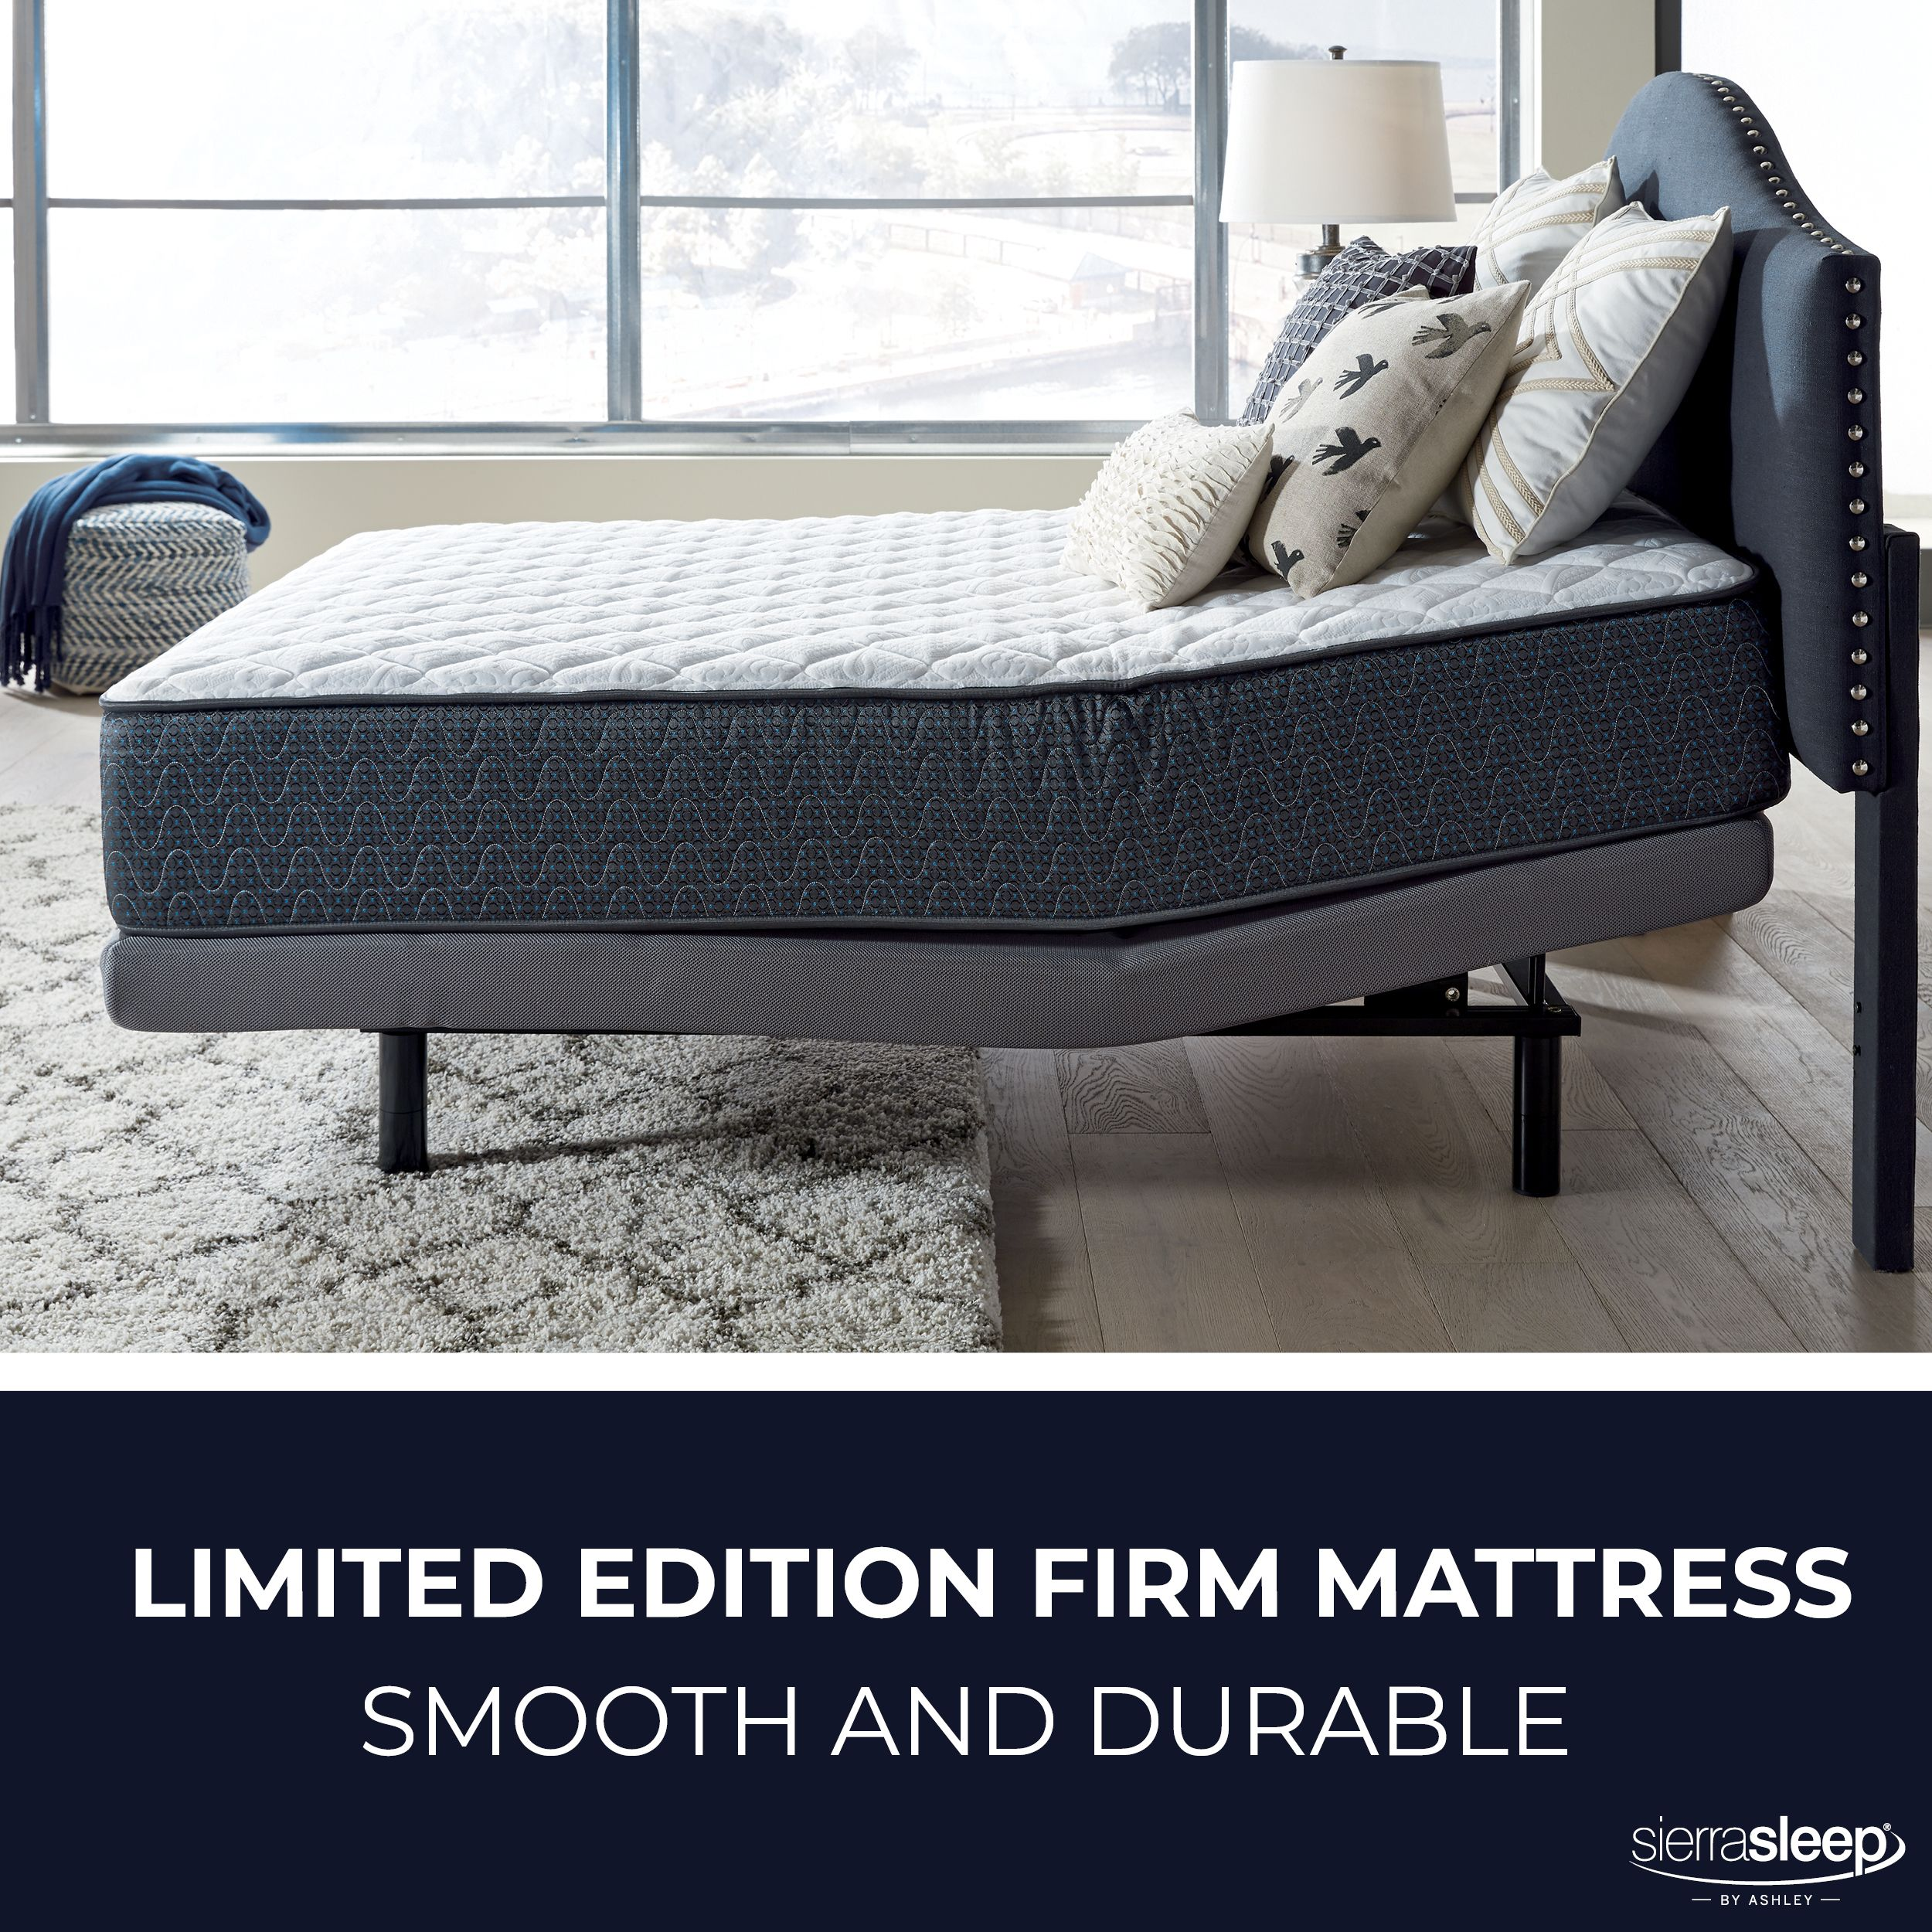 limited edition firm smooth and durable sierra sleep mattress by